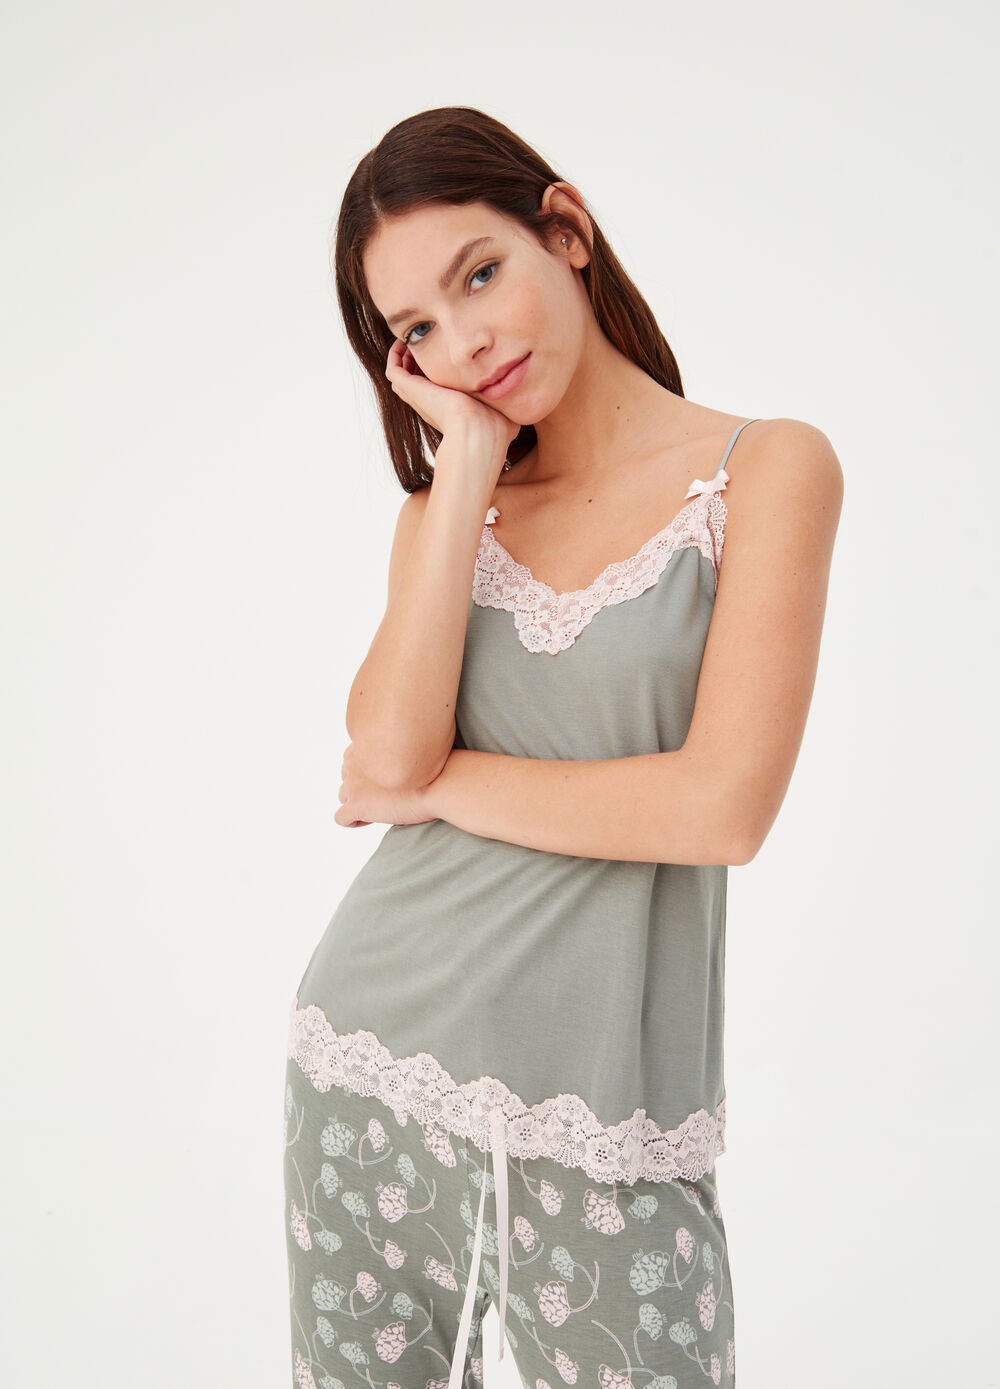 Jersey pyjama top with lace spaghetti straps